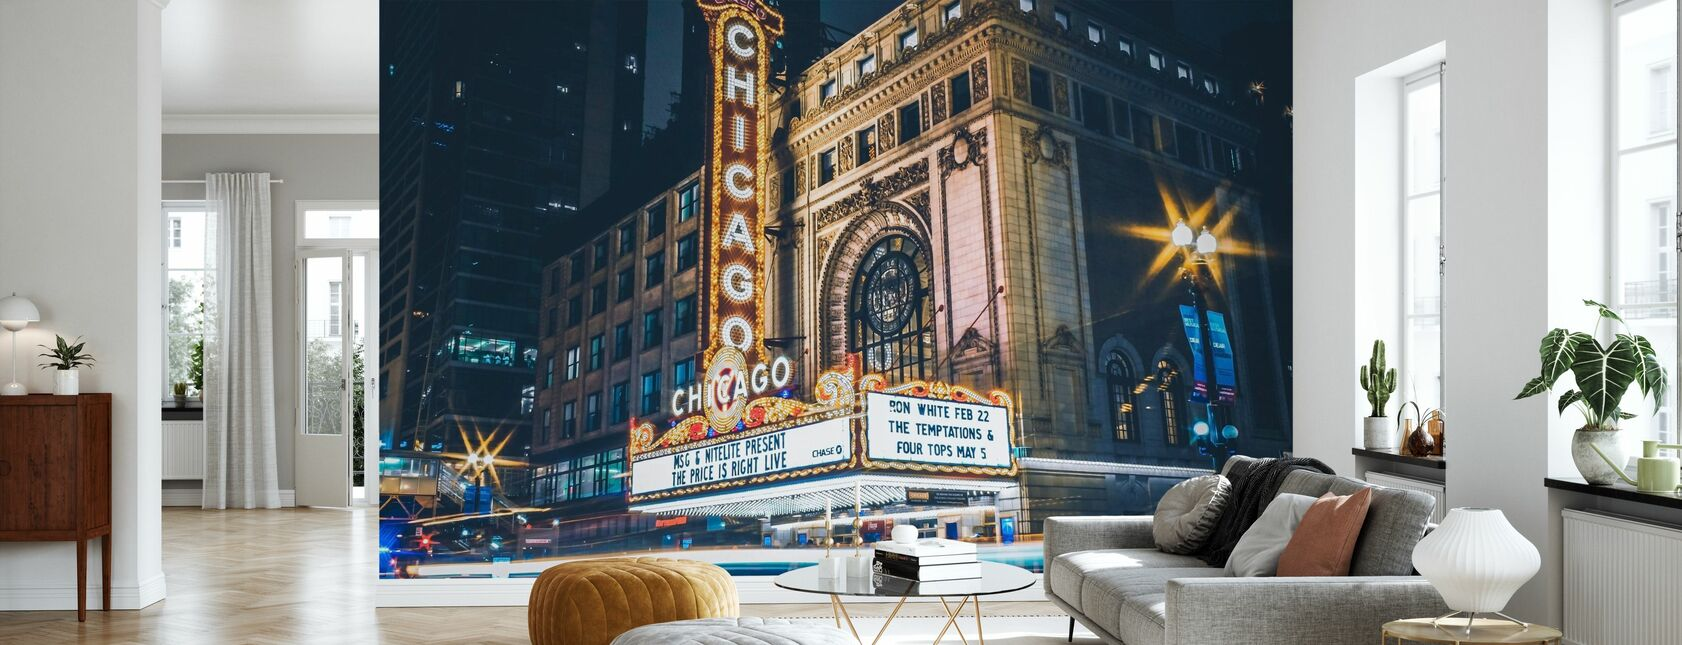 Chicago Theater - Behang - Woonkamer